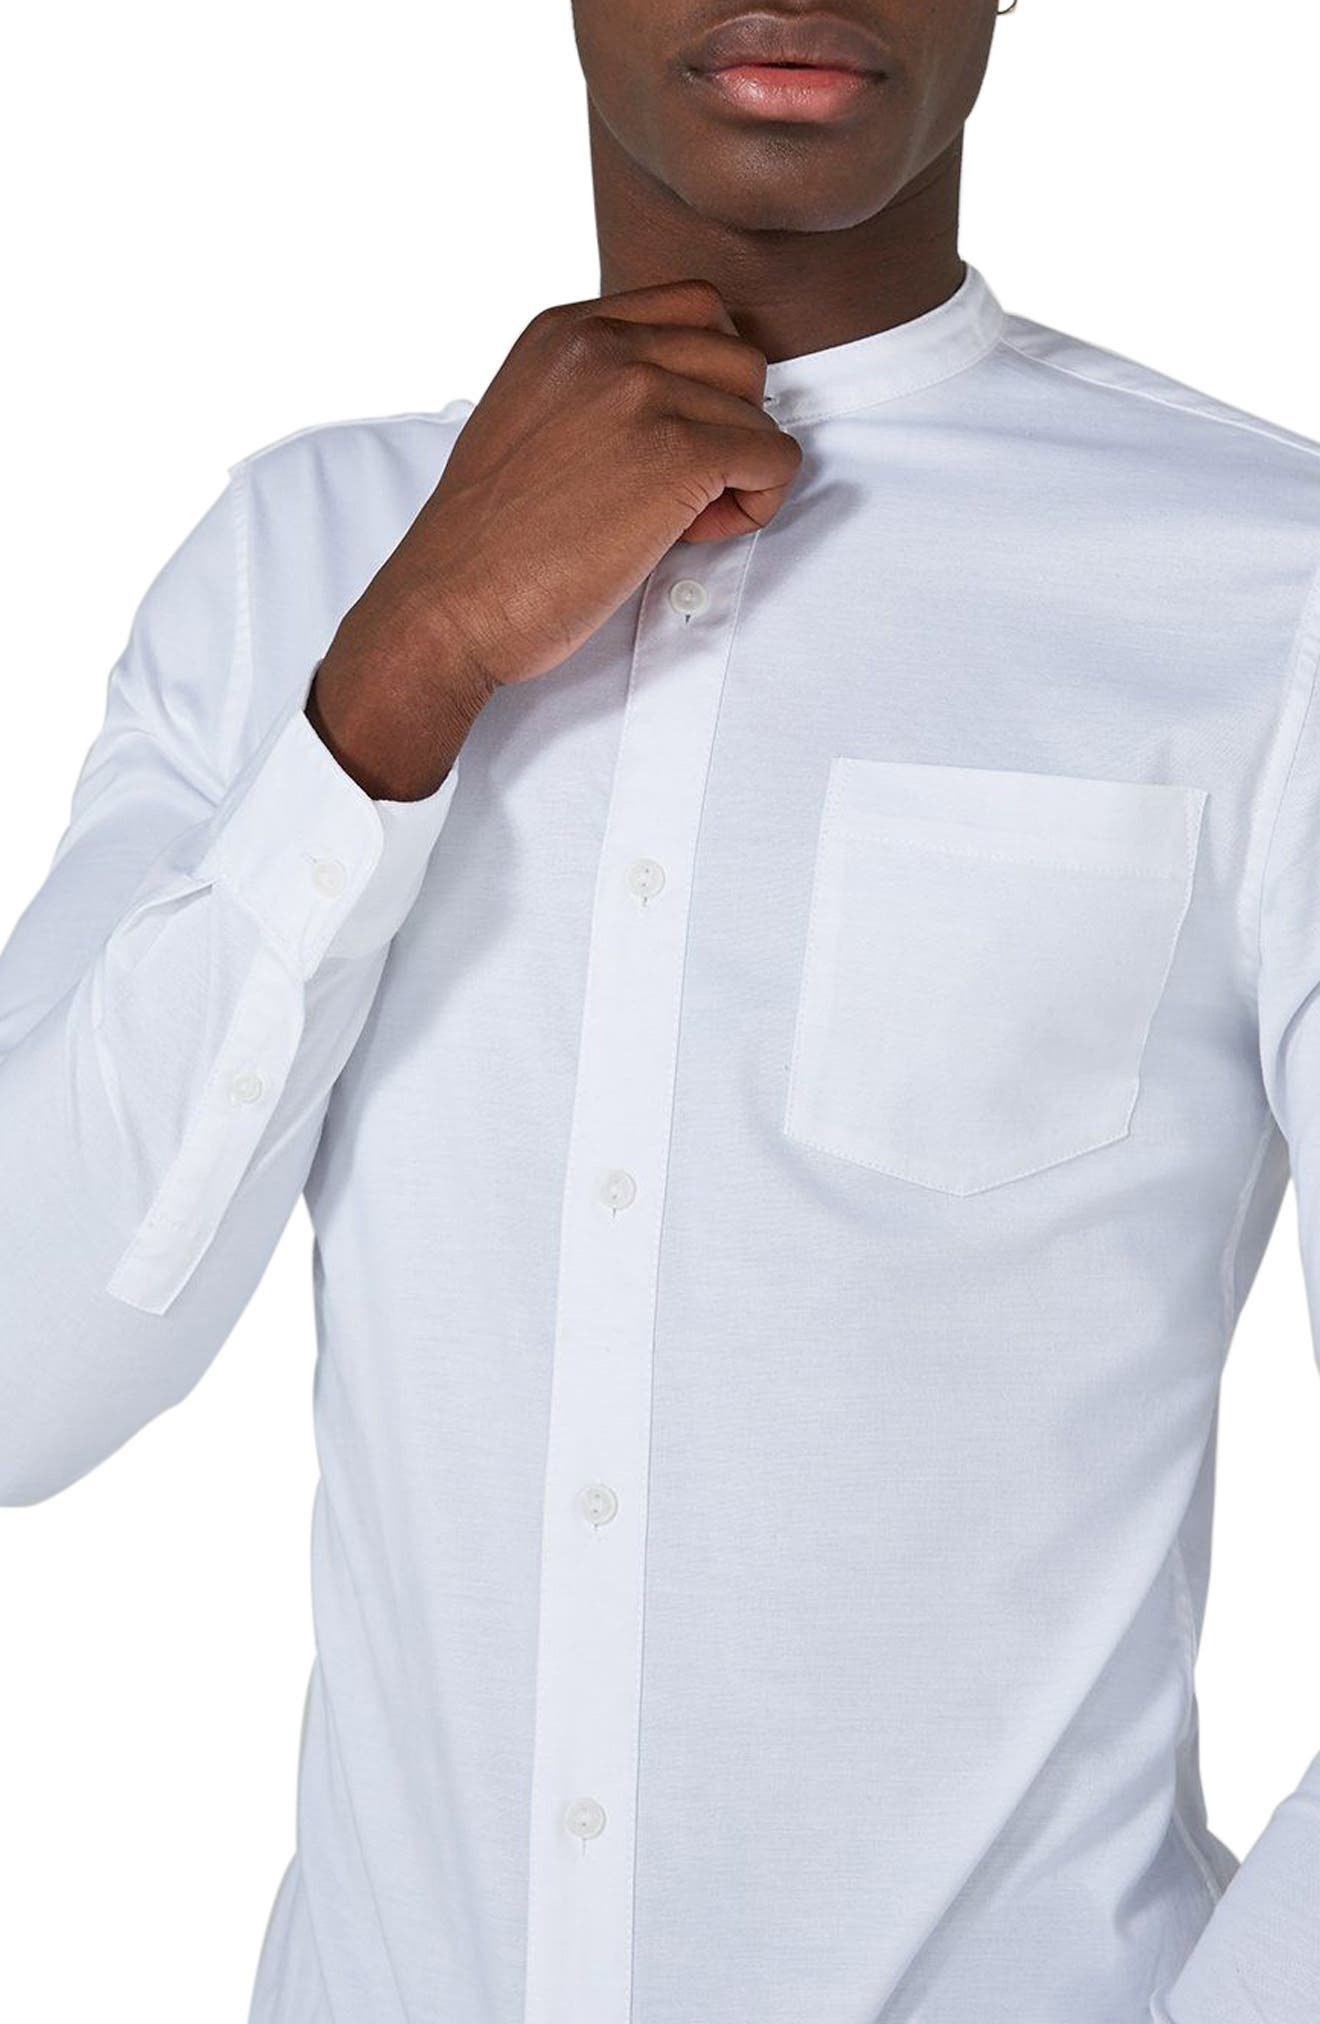 TOPMAN, Muscle Fit Band Collar Shirt, Alternate thumbnail 2, color, WHITE